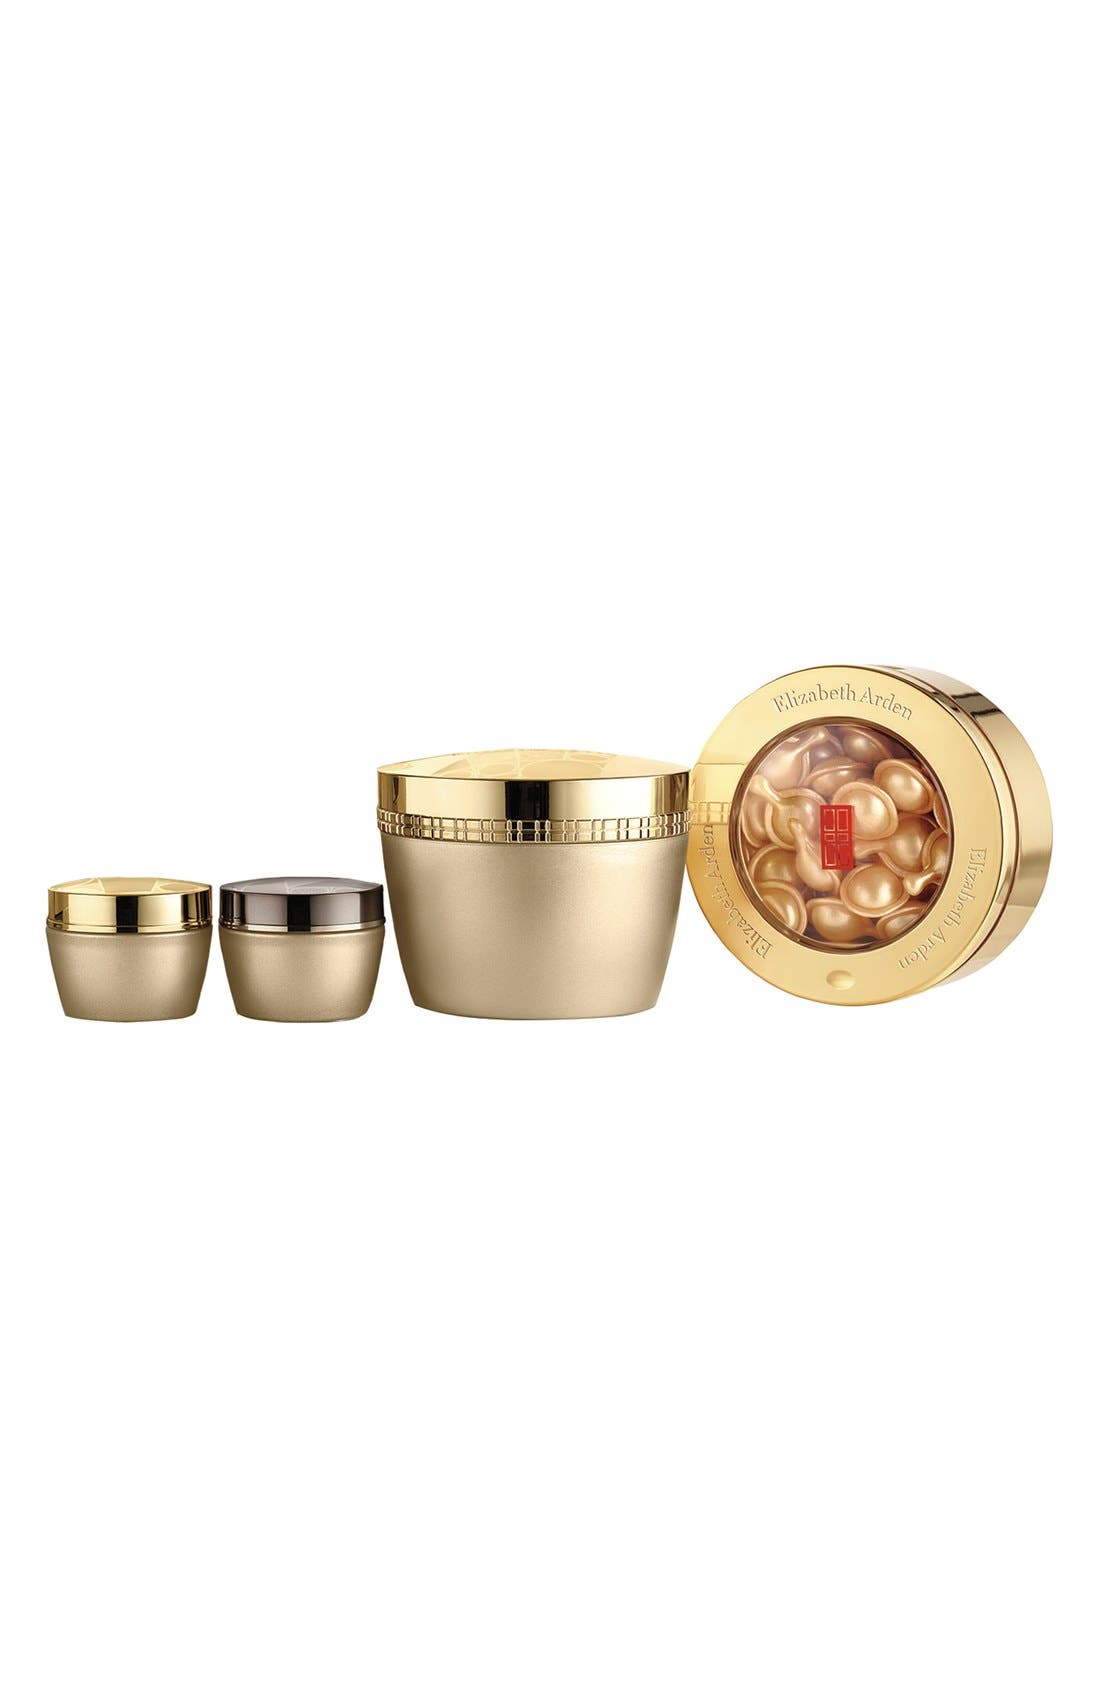 Ceramide Premiere Moisture & Renewal Set,                         Main,                         color, 000